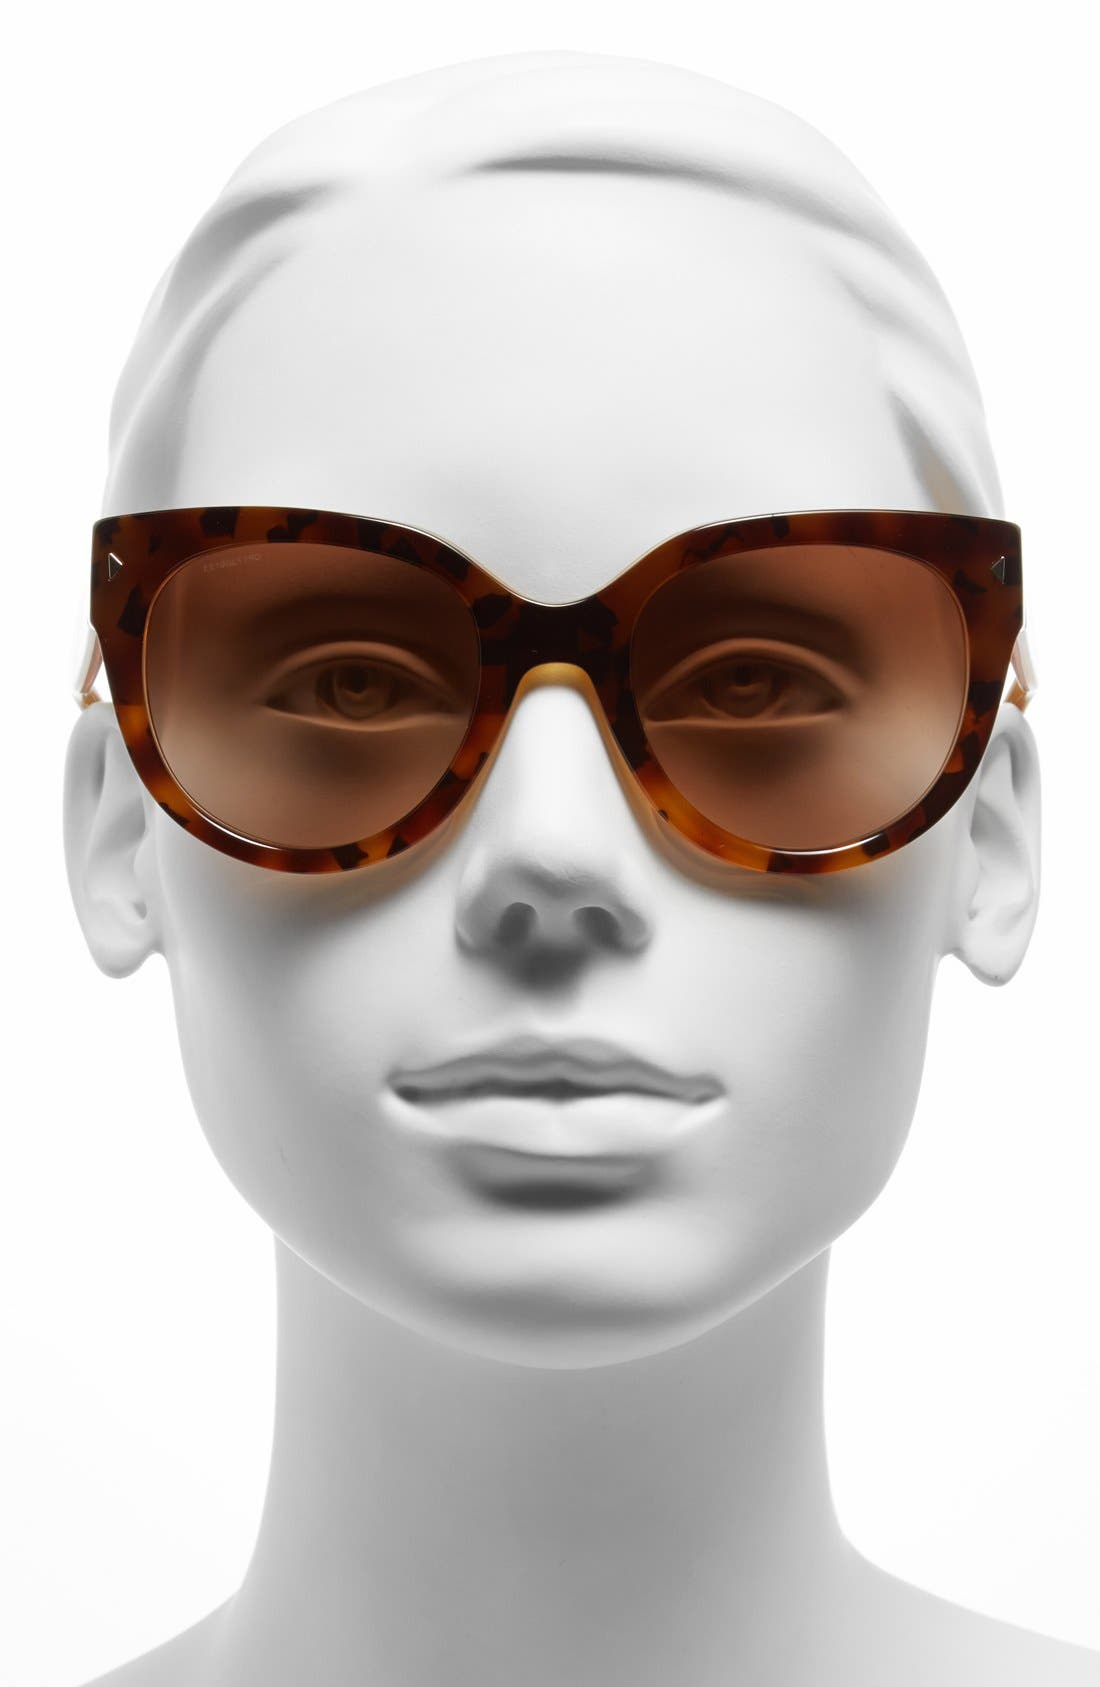 54mm Cat Eye Sunglasses,                             Alternate thumbnail 2, color,                             Yellow Tortoise